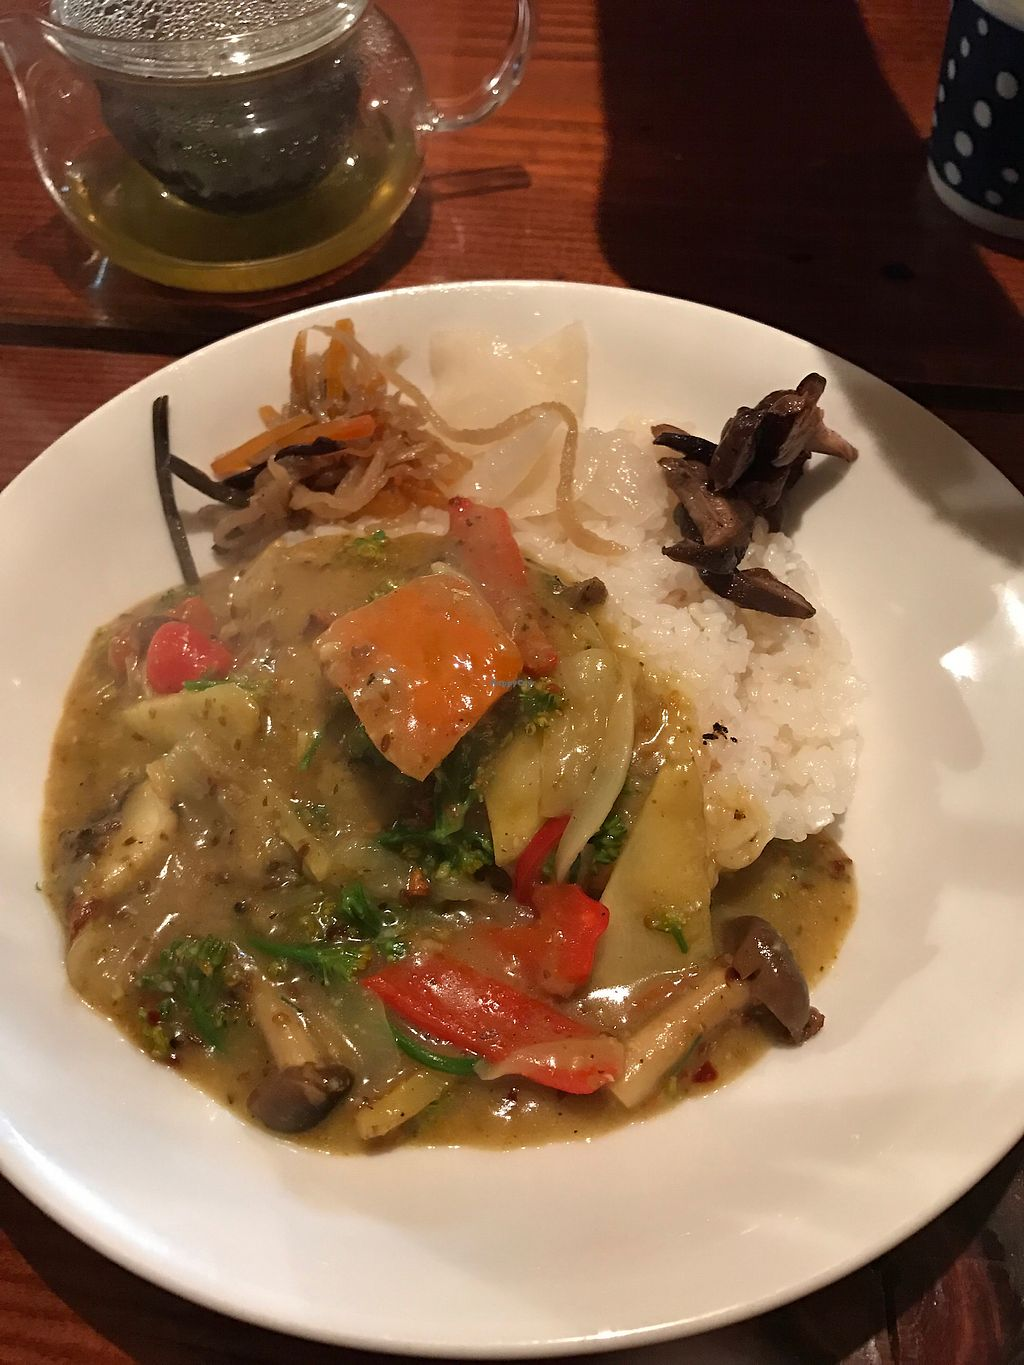 "Photo of Monpan Shokudo  by <a href=""/members/profile/Tpatel"">Tpatel</a> <br/>Japanese style vegetable curry with rice <br/> April 10, 2018  - <a href='/contact/abuse/image/112157/383139'>Report</a>"